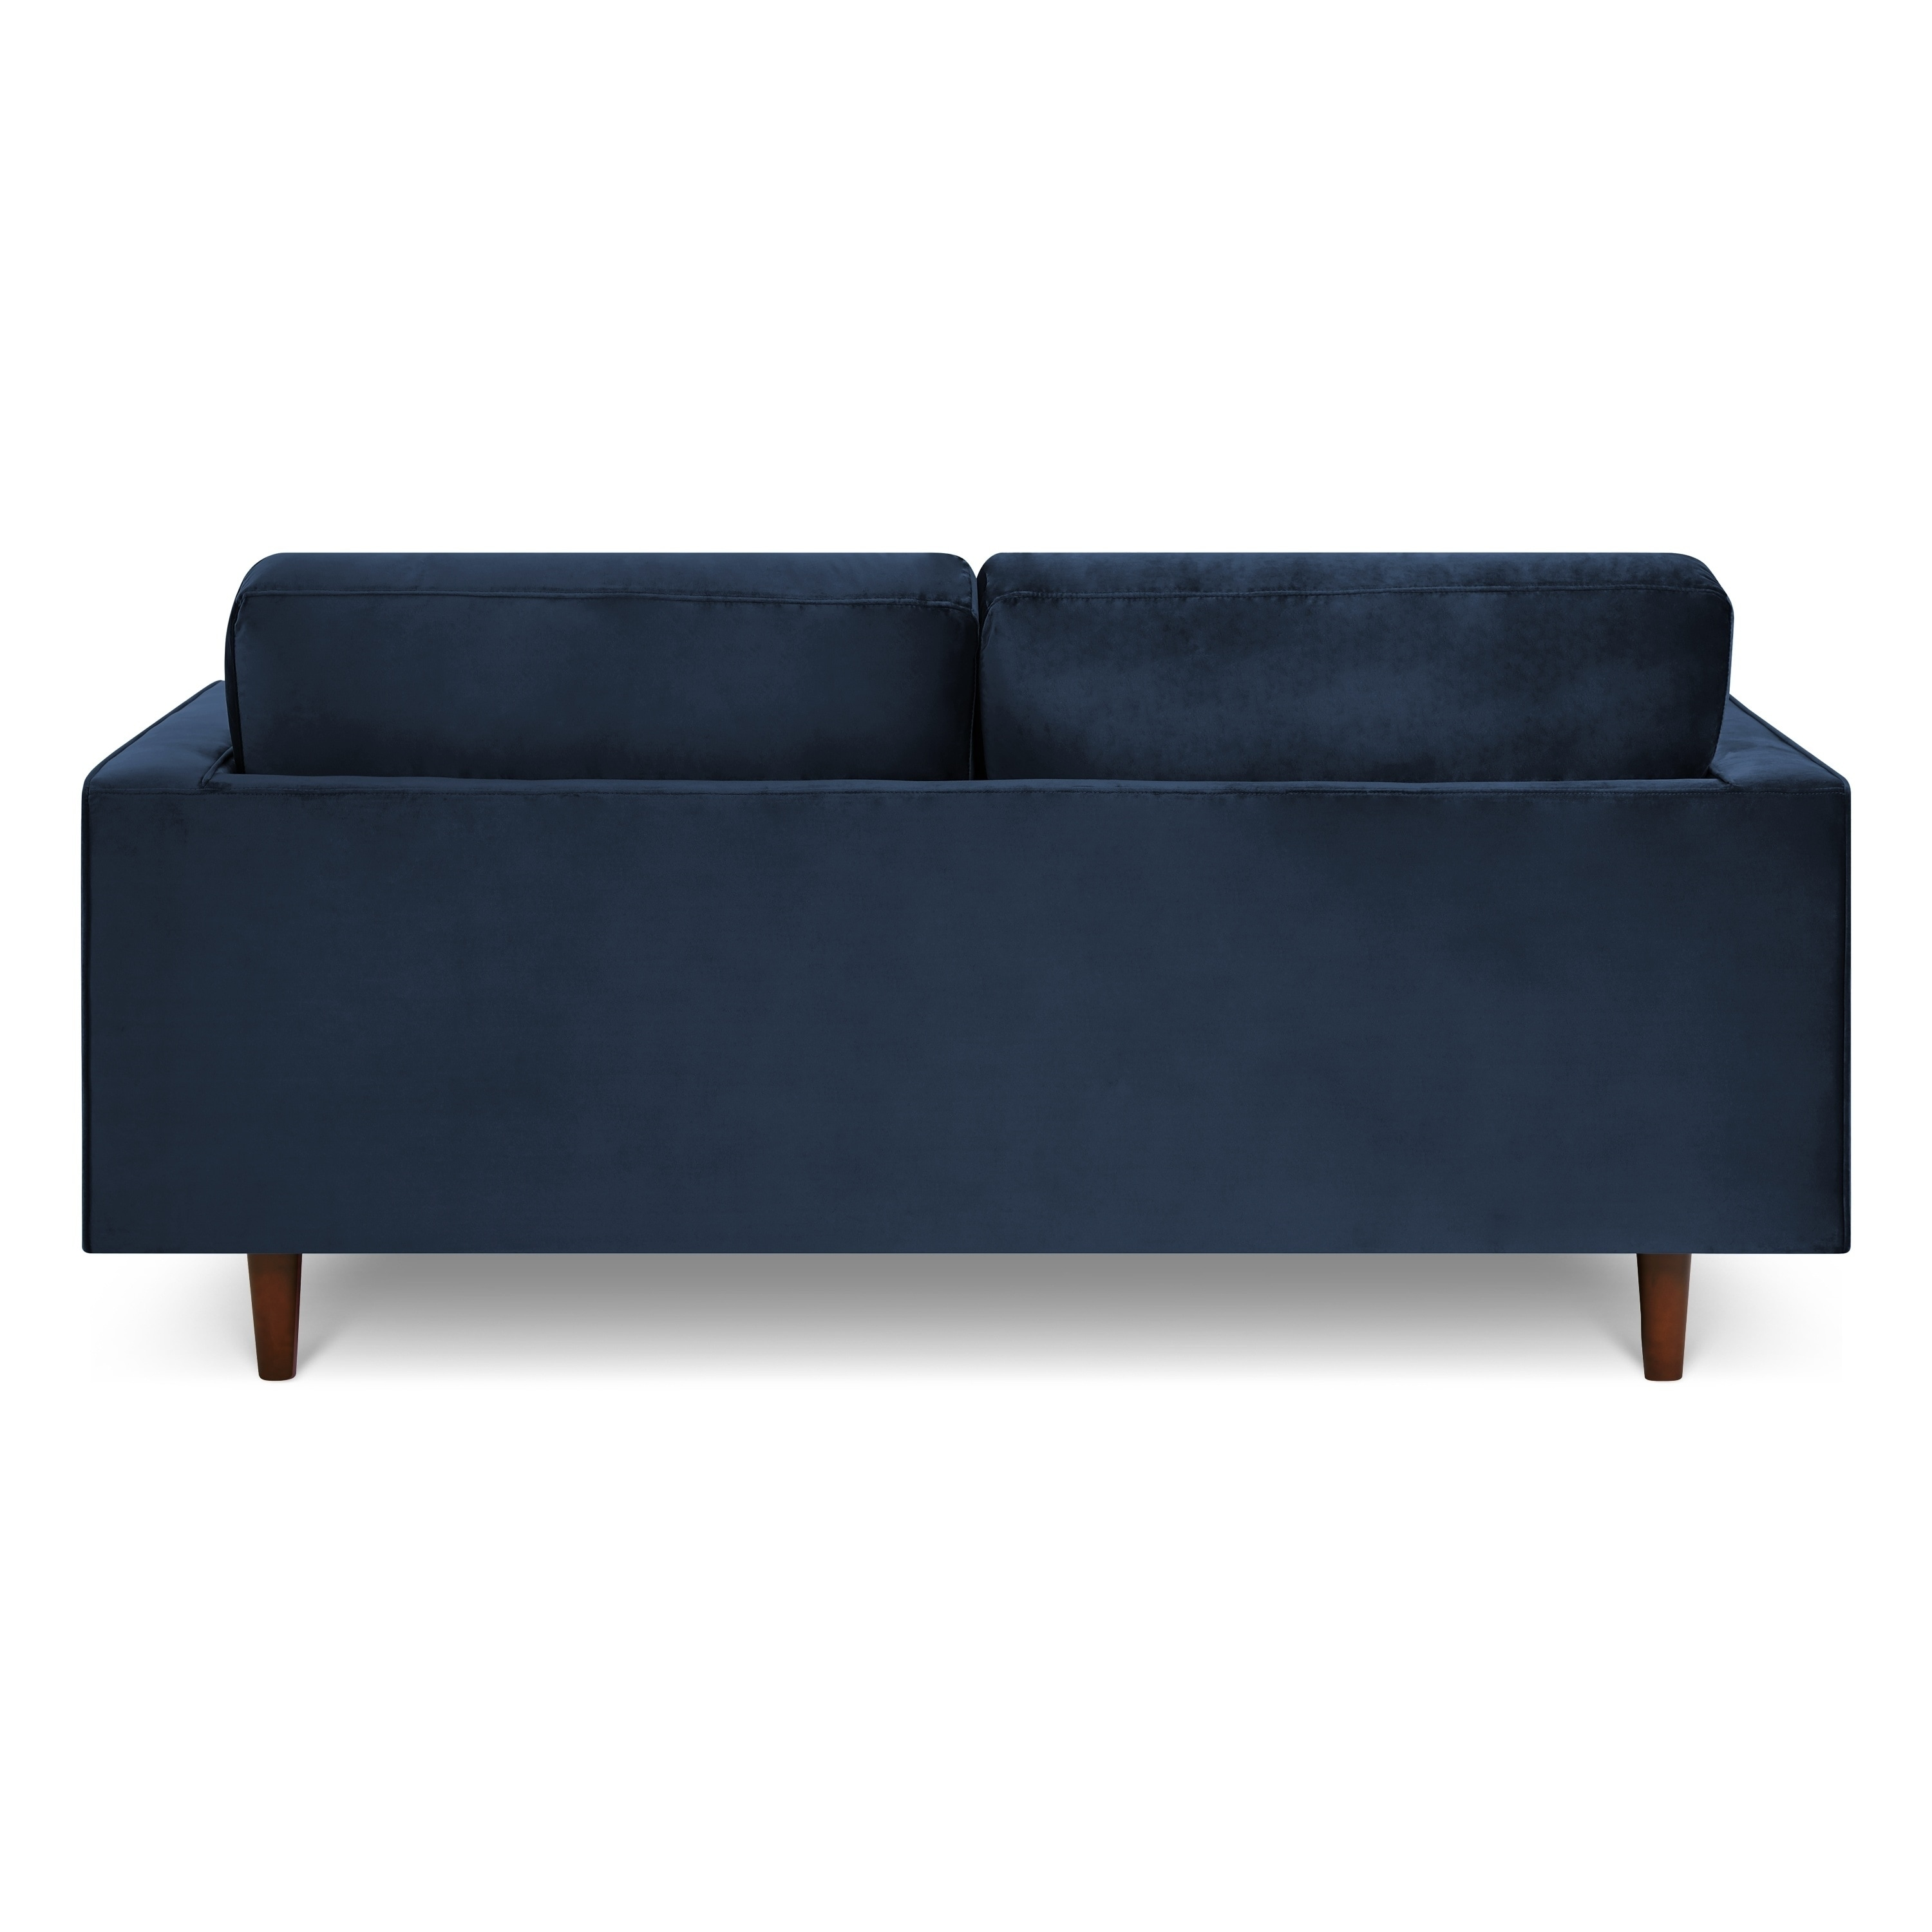 Poly and Bark Inga 72-inch Apartment Sofa with Velvet in Space Blue